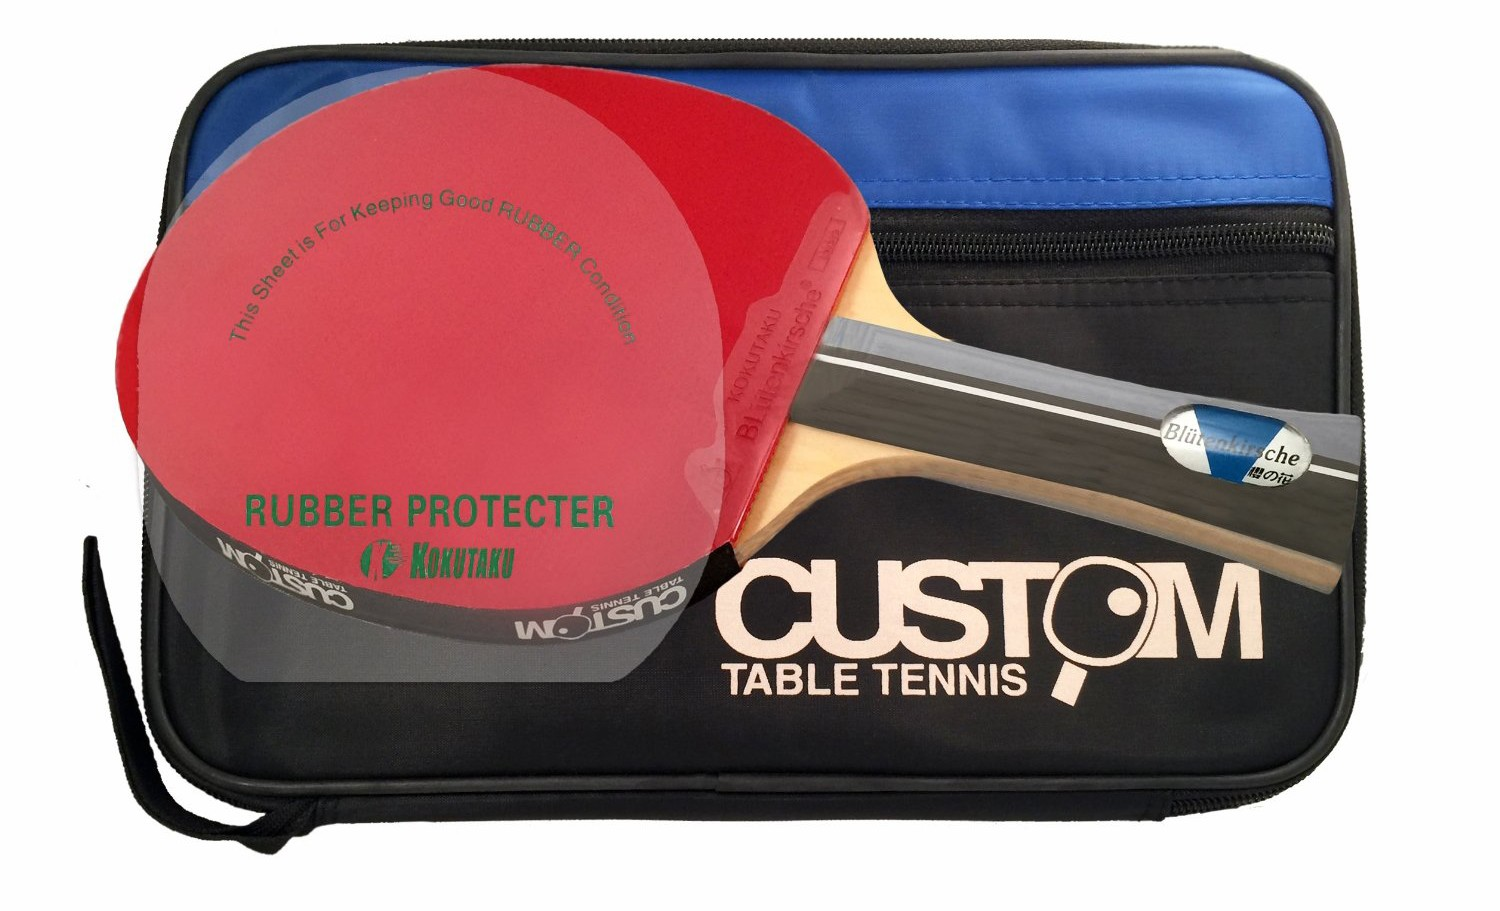 Blutenkirsche Force Table Tennis Bat Review